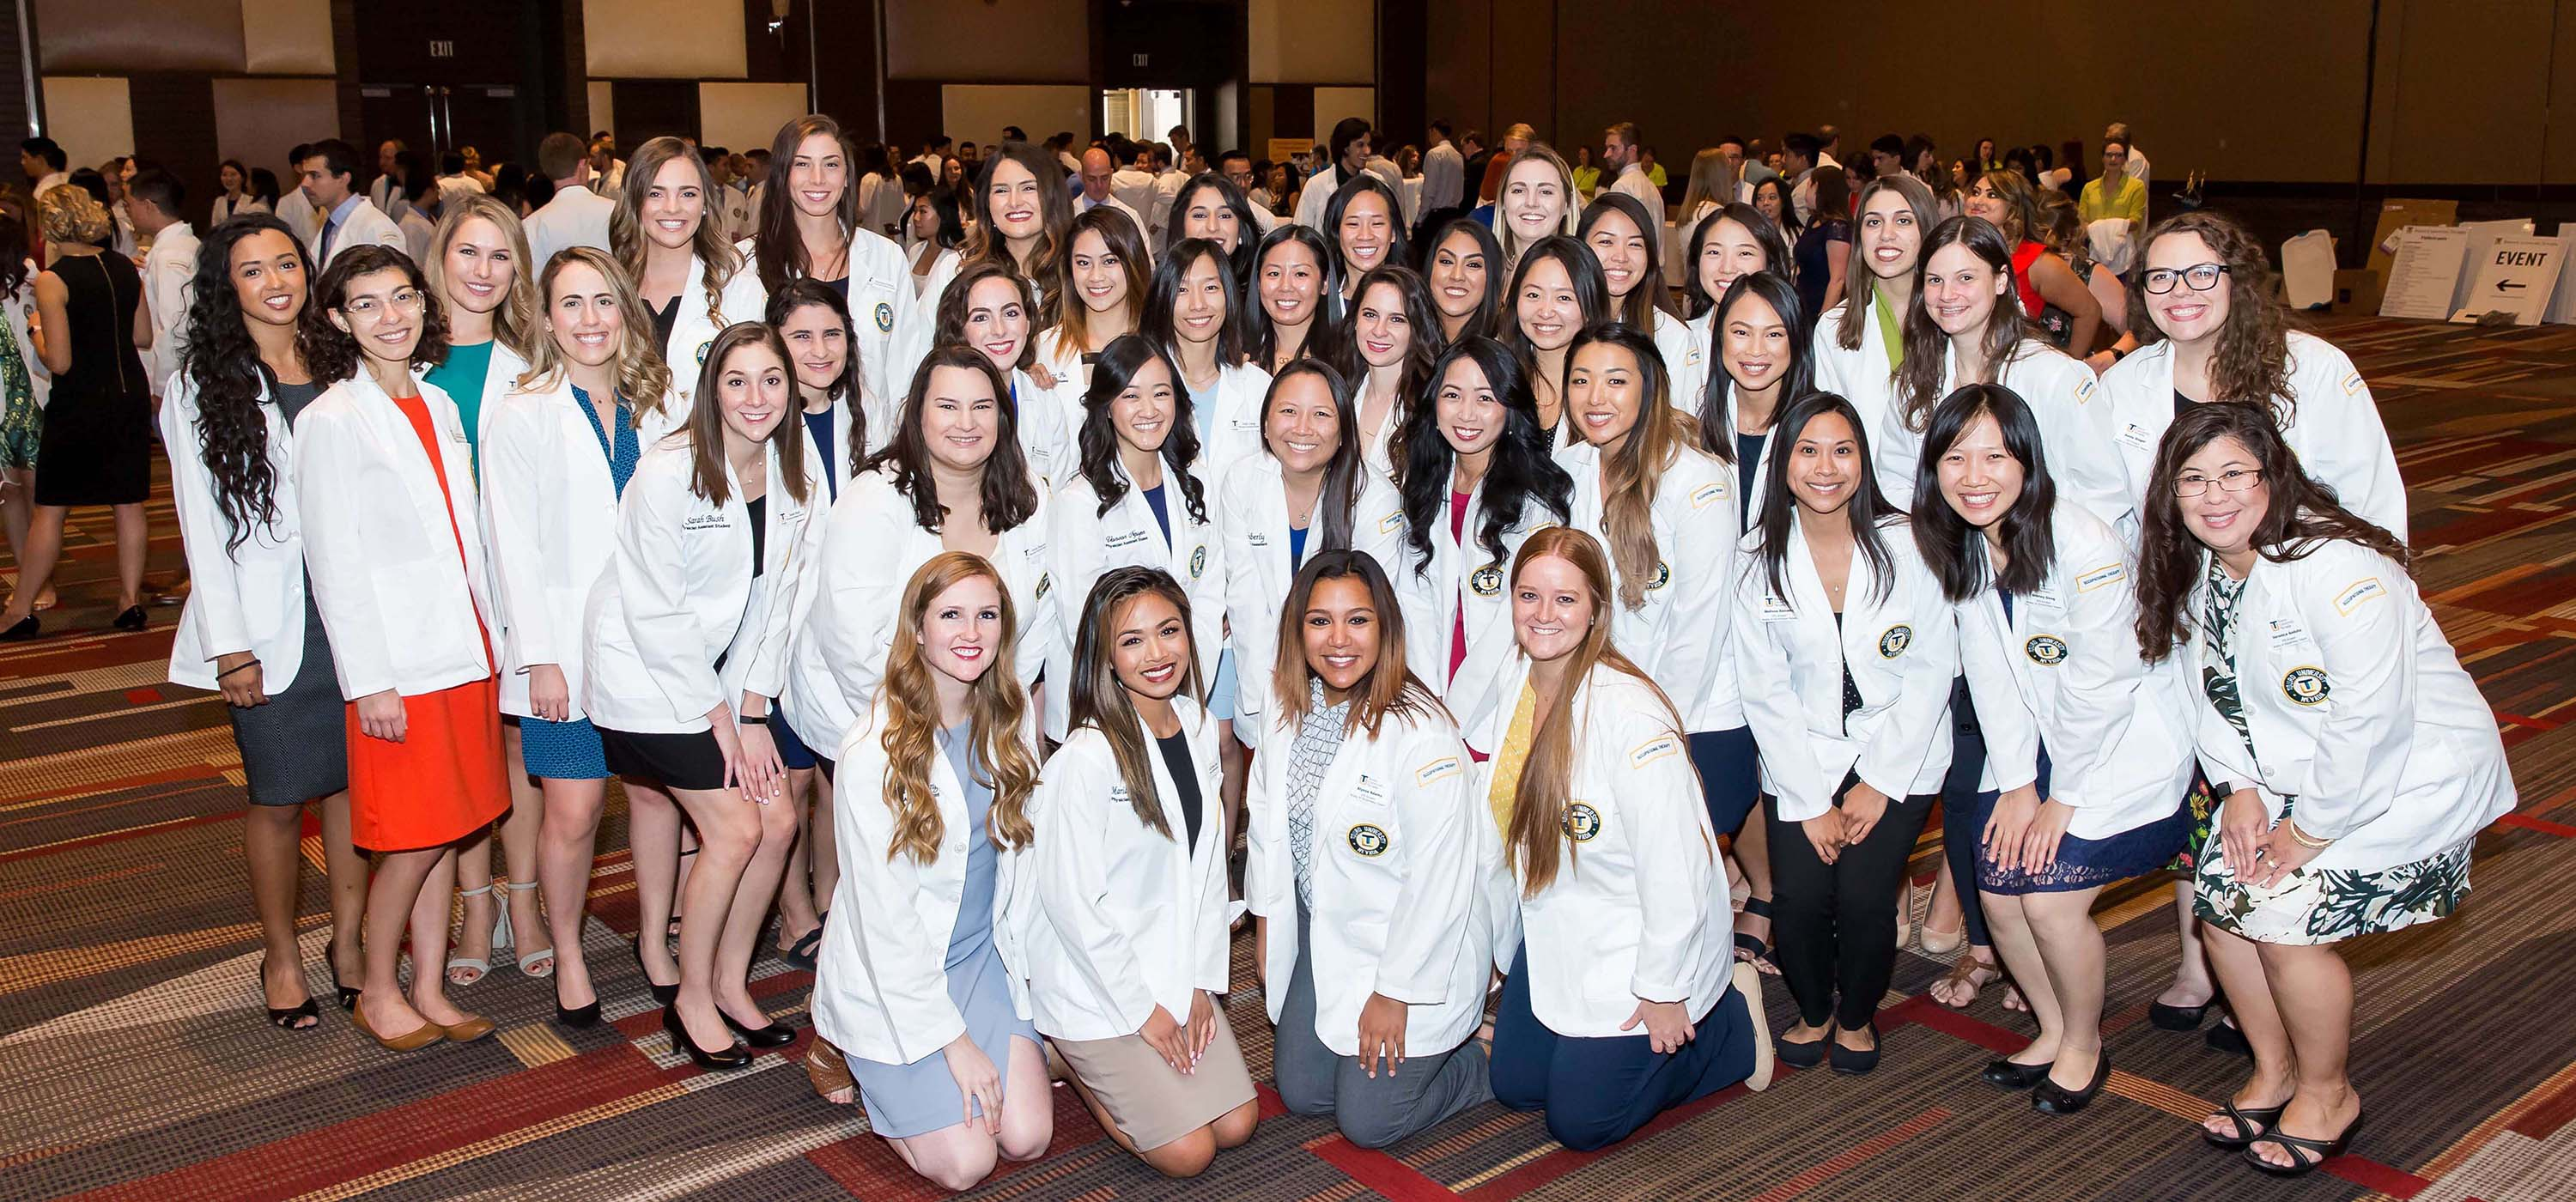 Students at the Aug. 6, 2018 White Coat Ceremony